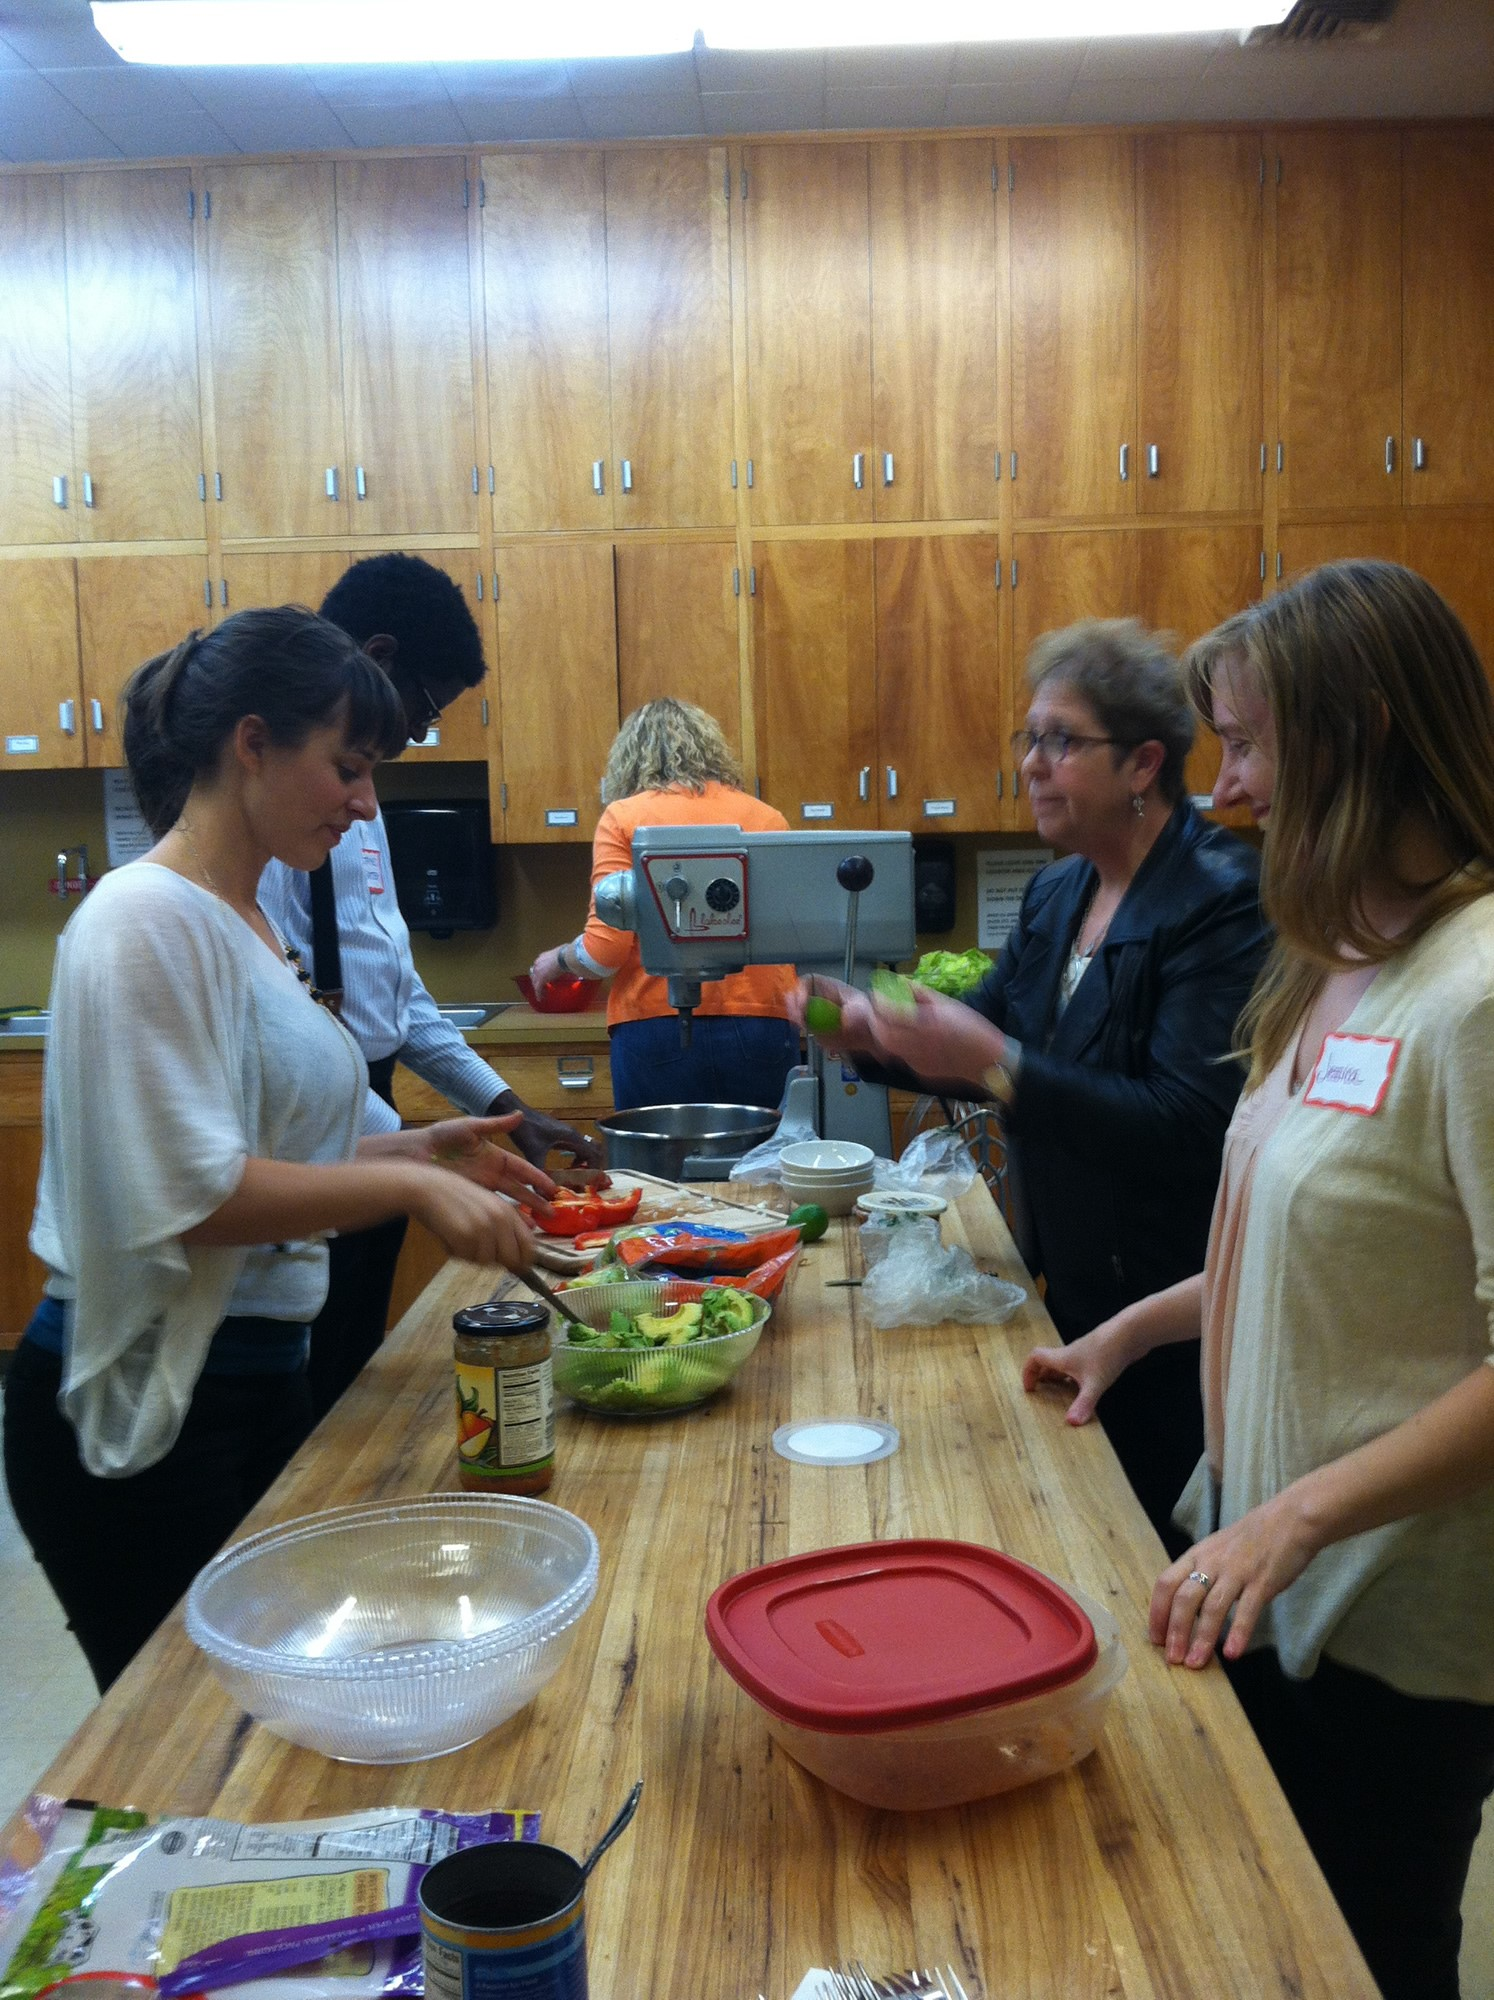 Members of First United Methodist Church in Portland, Ore., prepare a meal for short-term missioners in April 2014. Photo by the Rev. Jeremy Smith, courtesy of First United Methodist Church